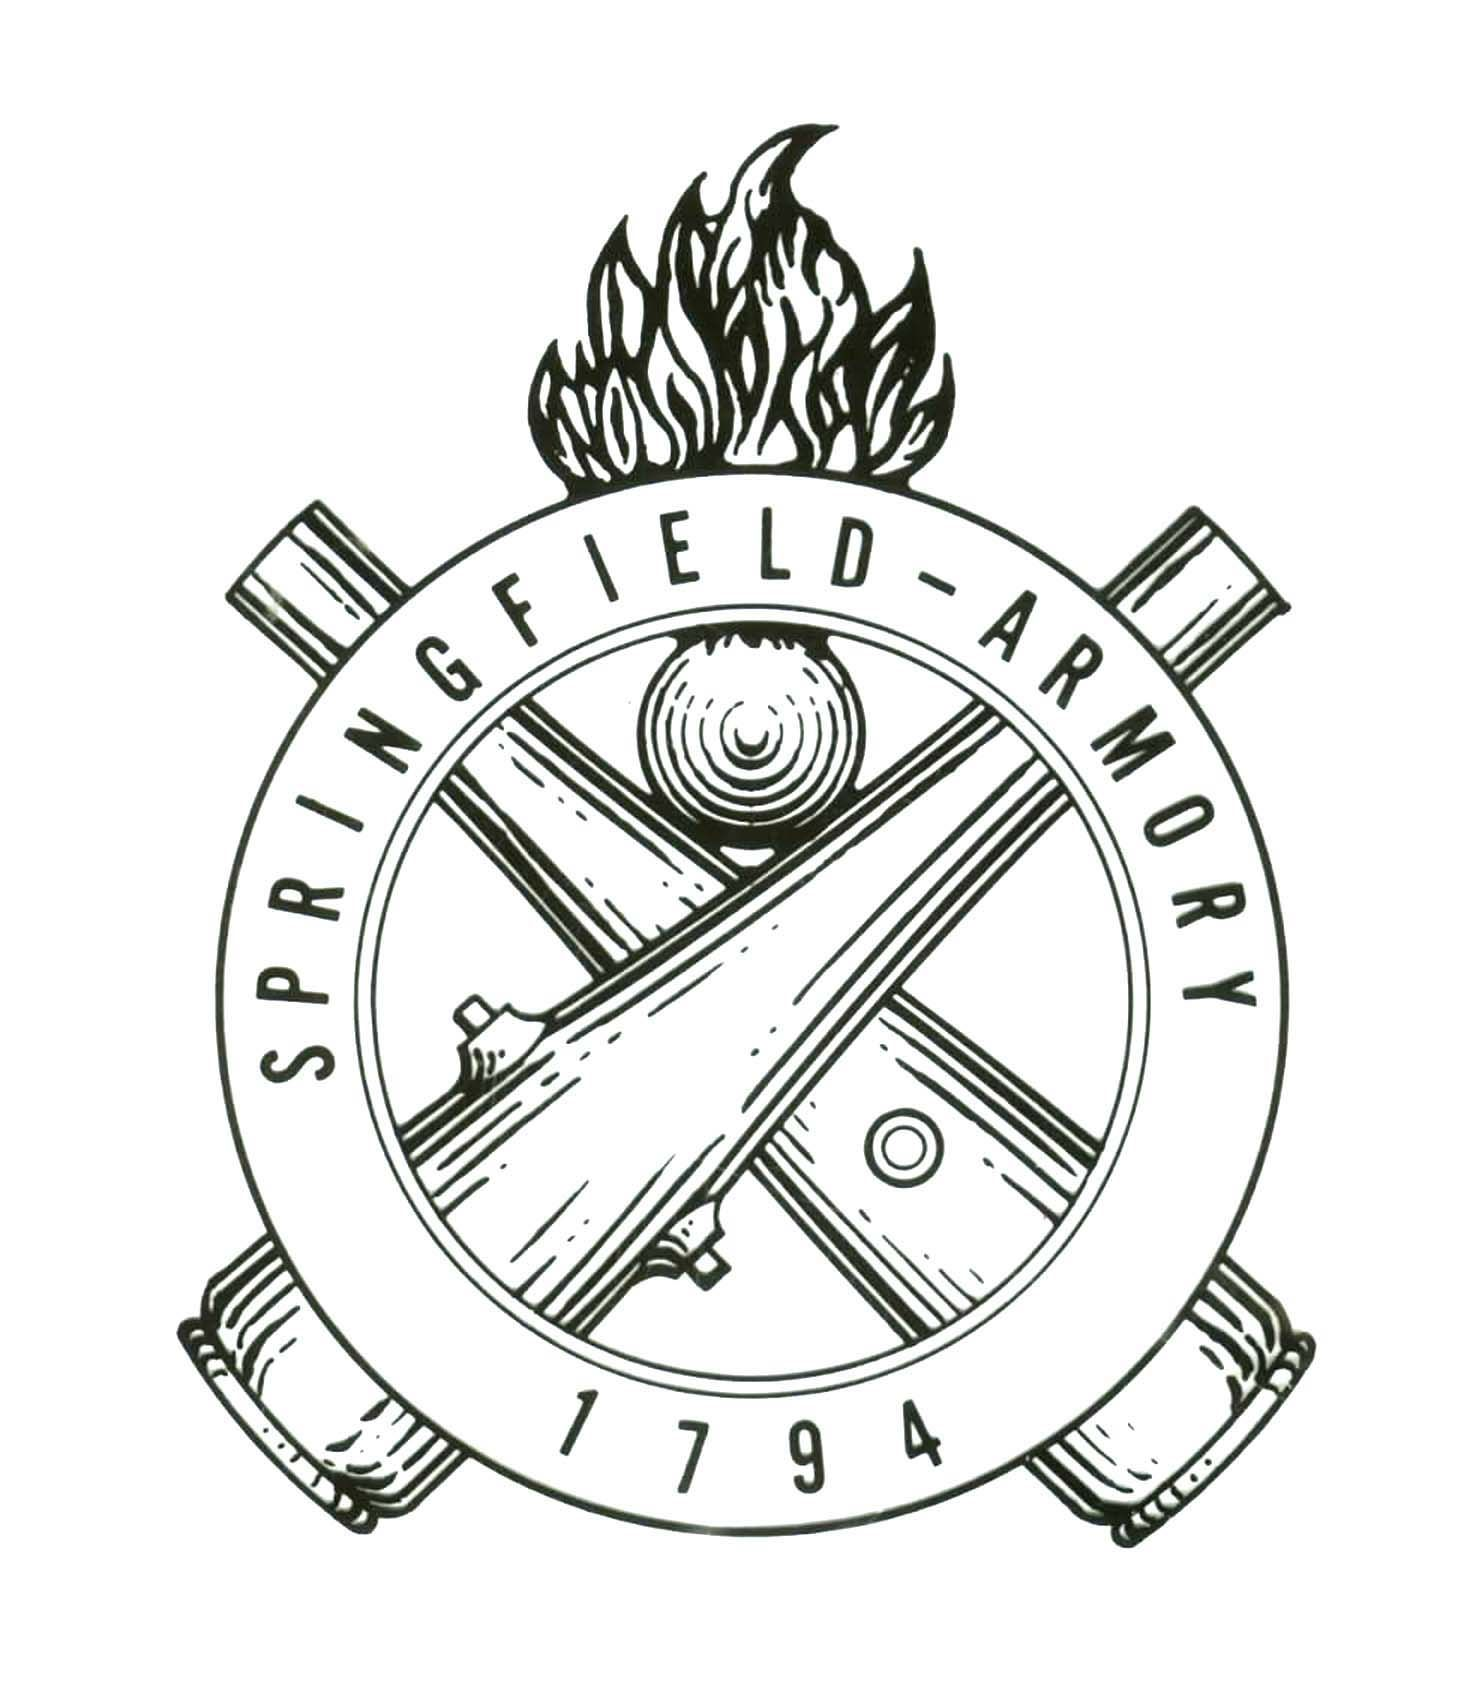 Springfield Armory S Us Ordnance Department Crest